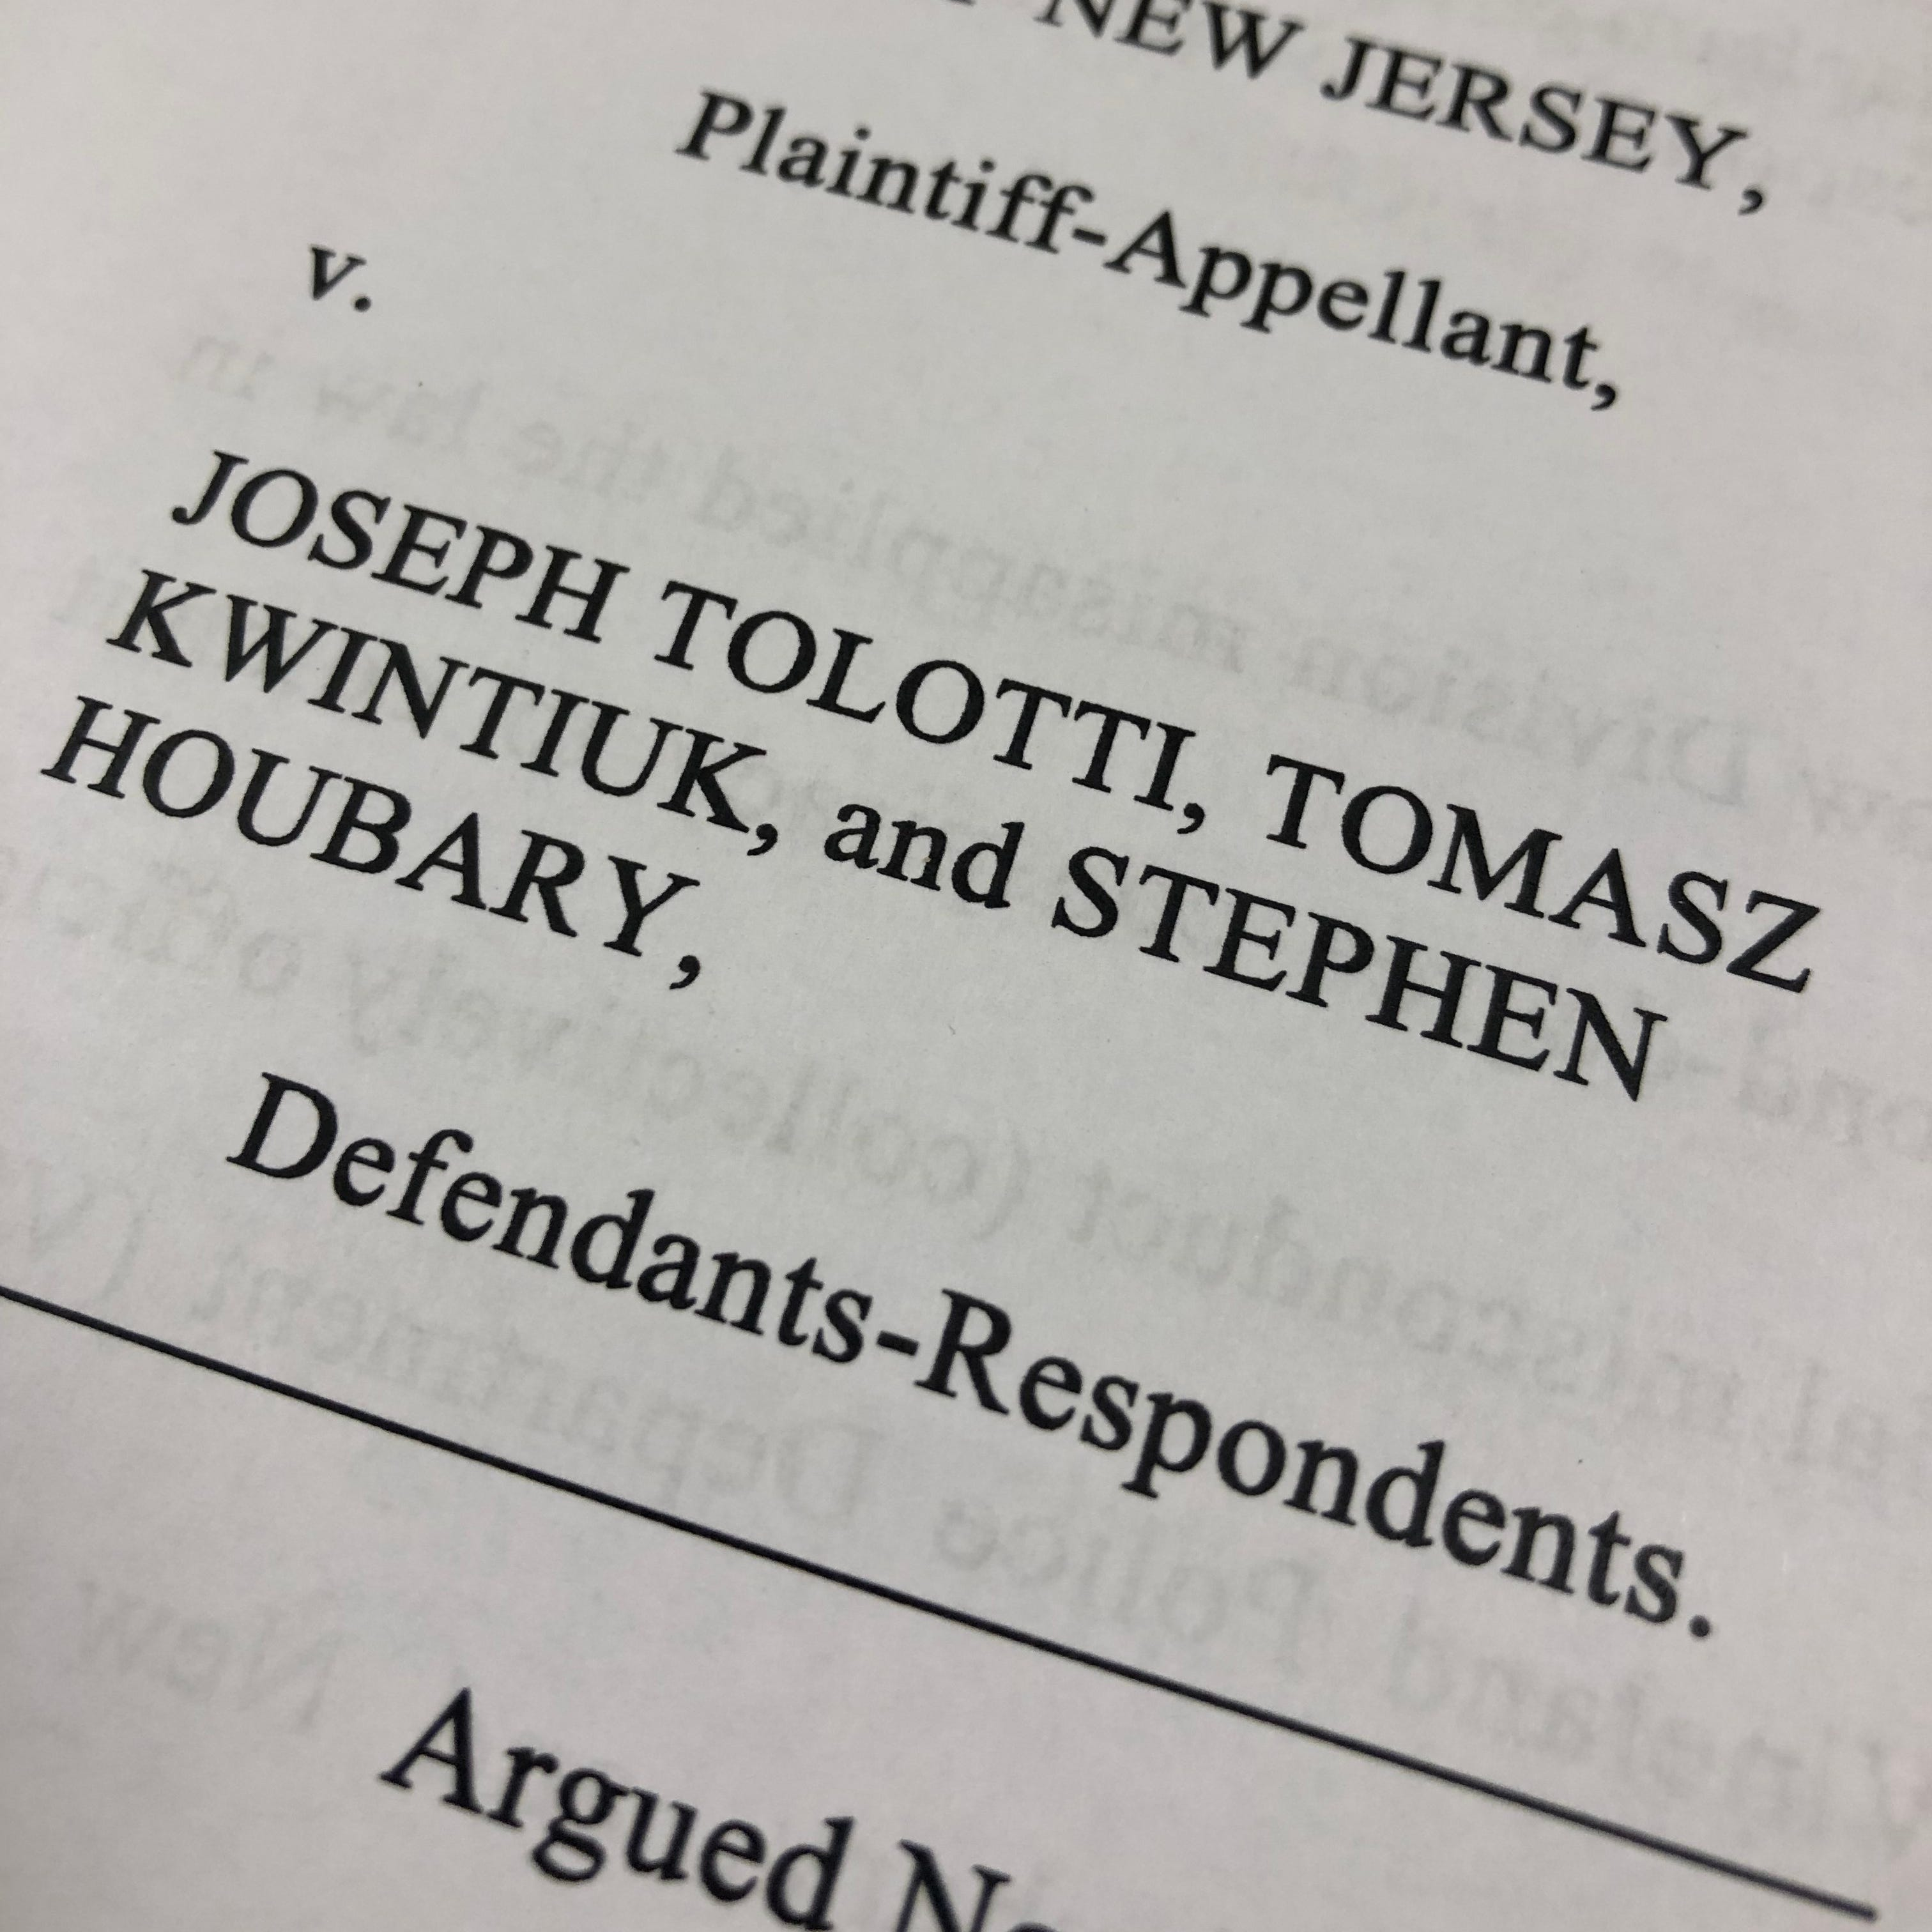 Misconduct charges reinstated against two Vineland police officers